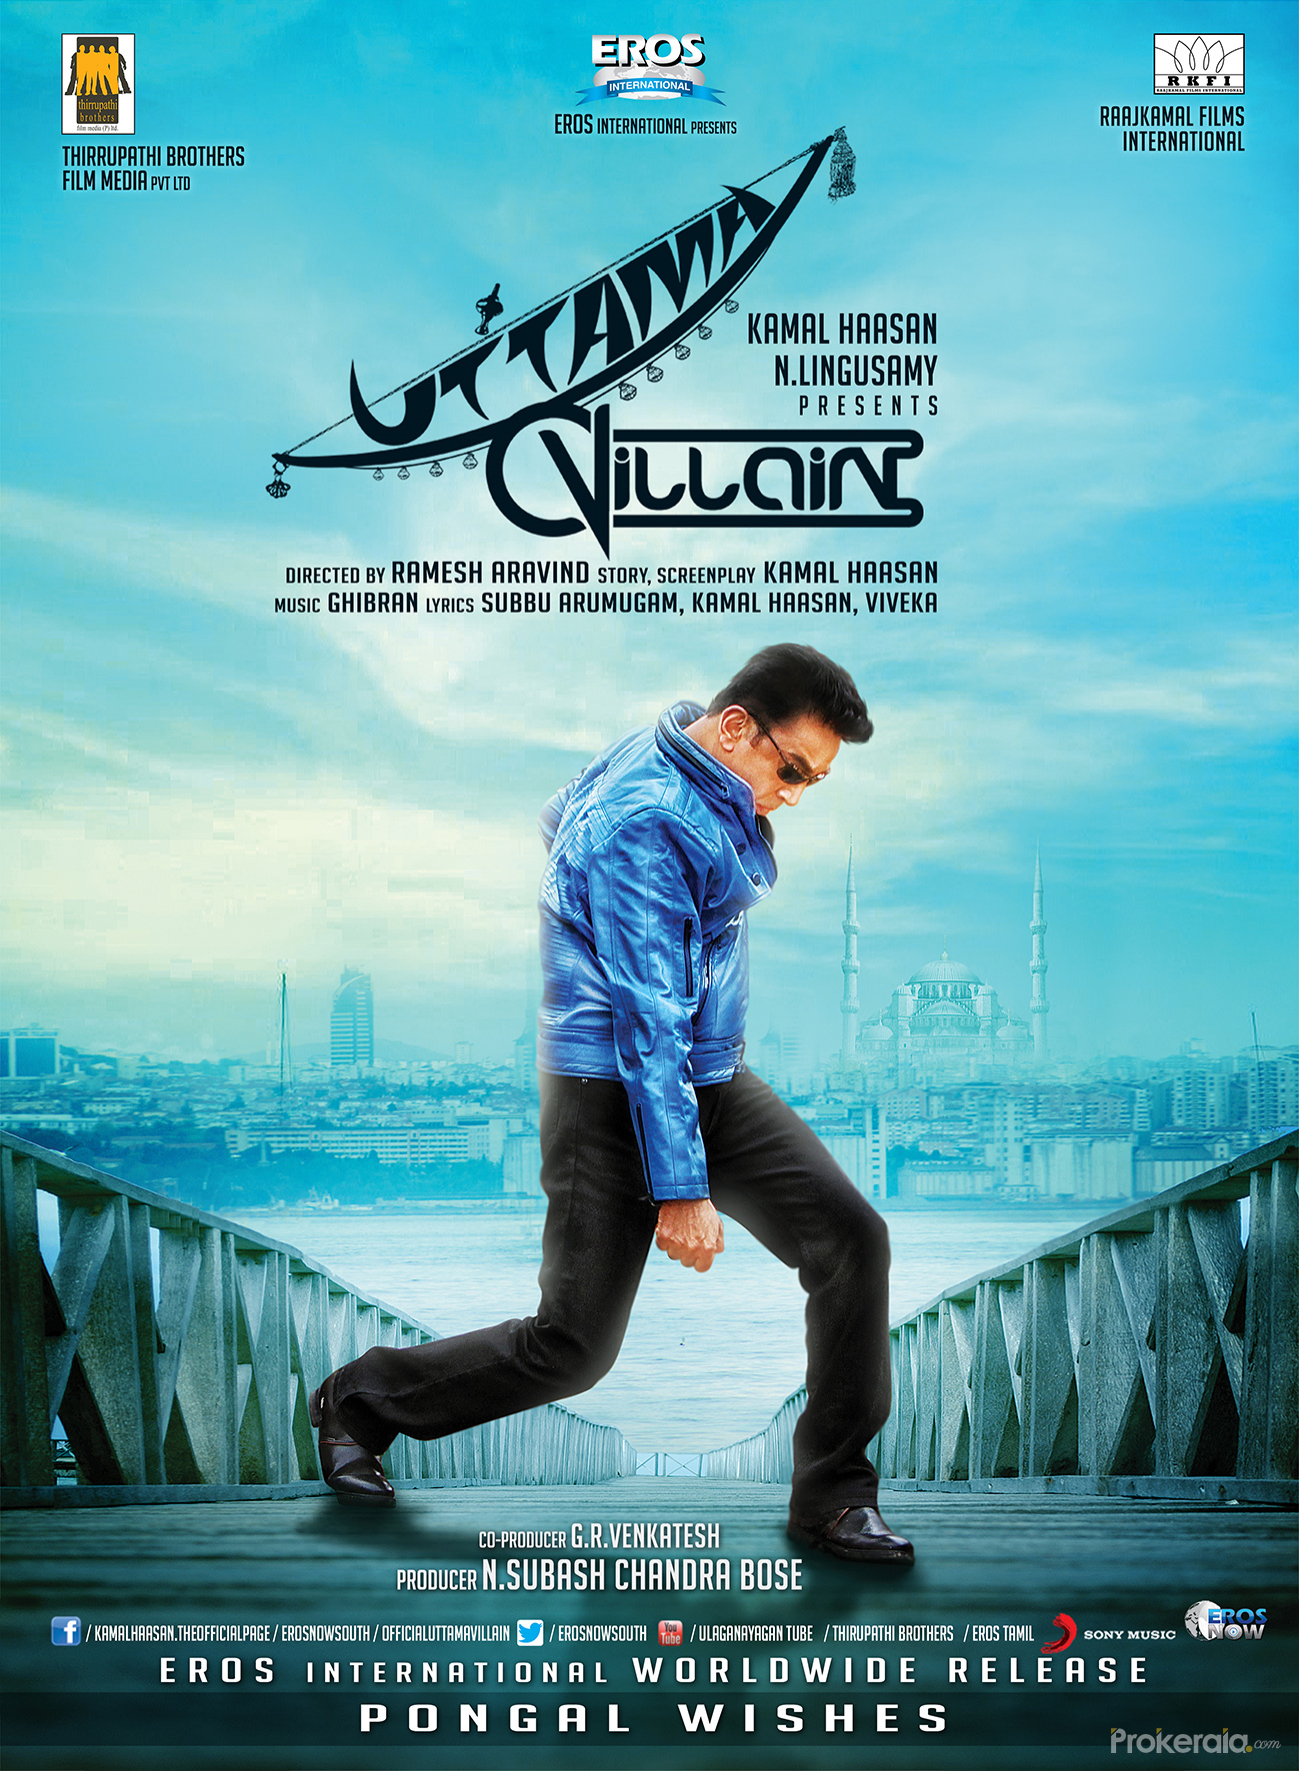 uttama-villain-movie-wallpaper-36453.jpg